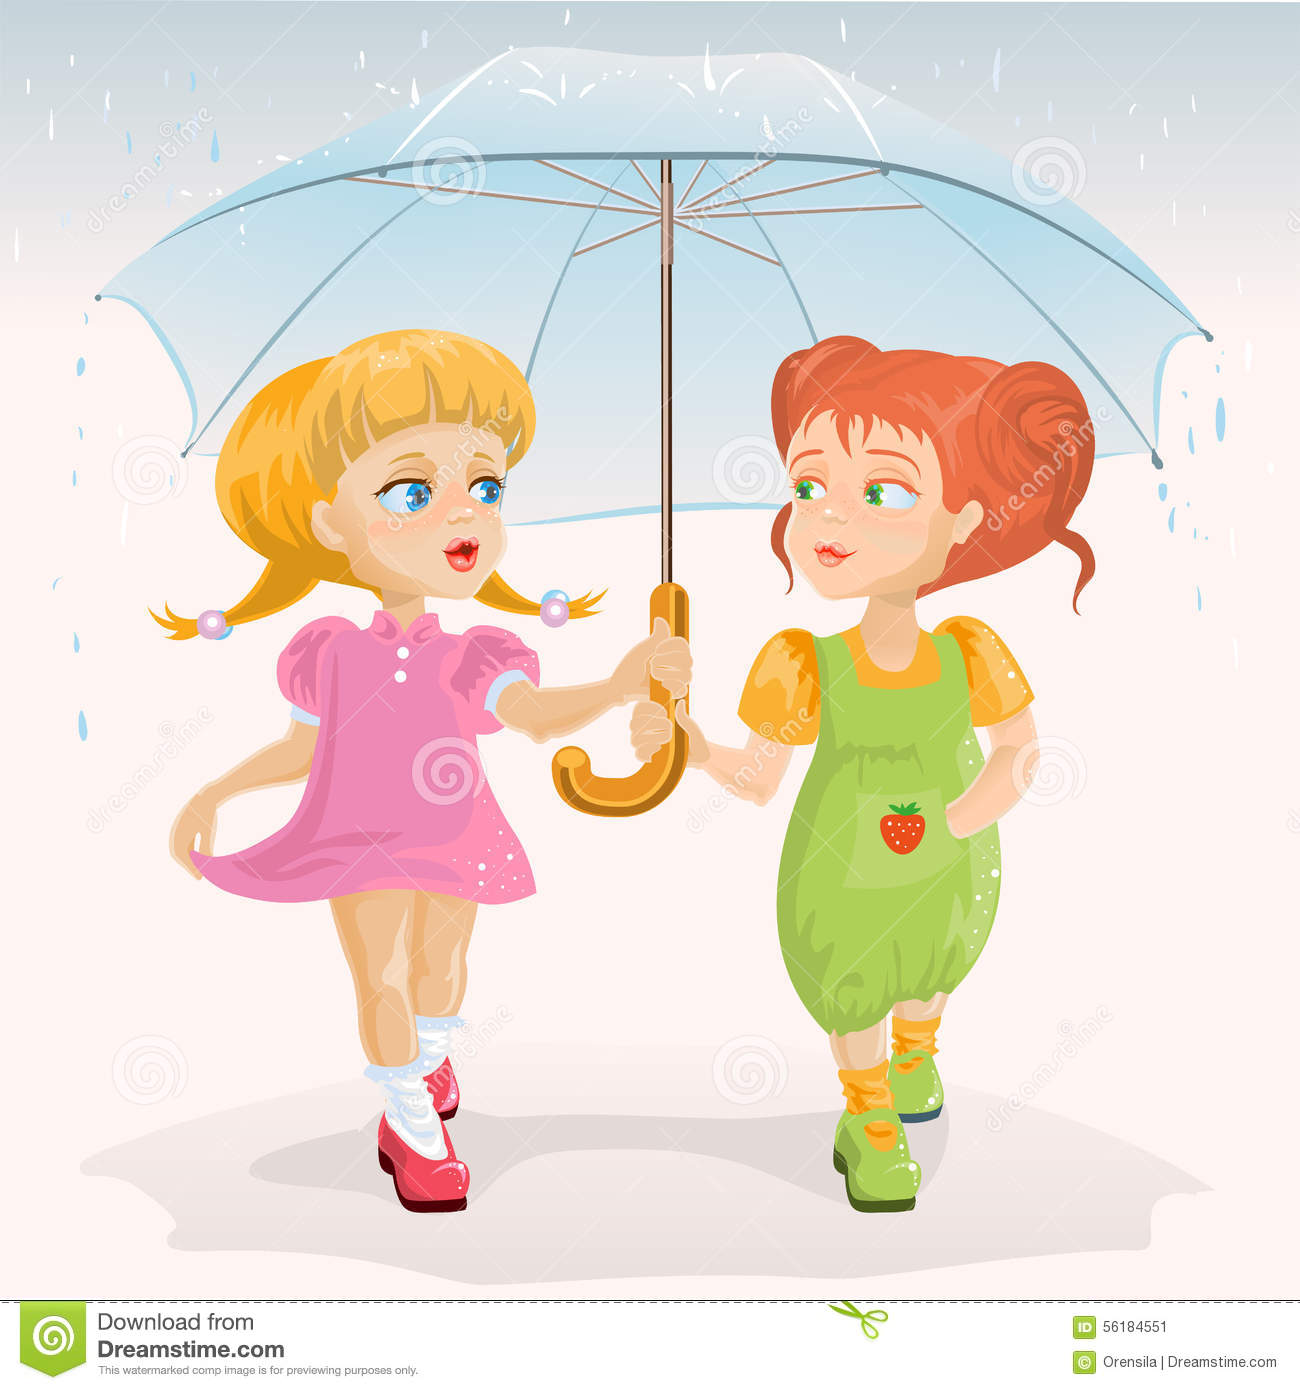 Two Friends Holding Umbrella Template Greeting Card Friendship – Friendship Card Template